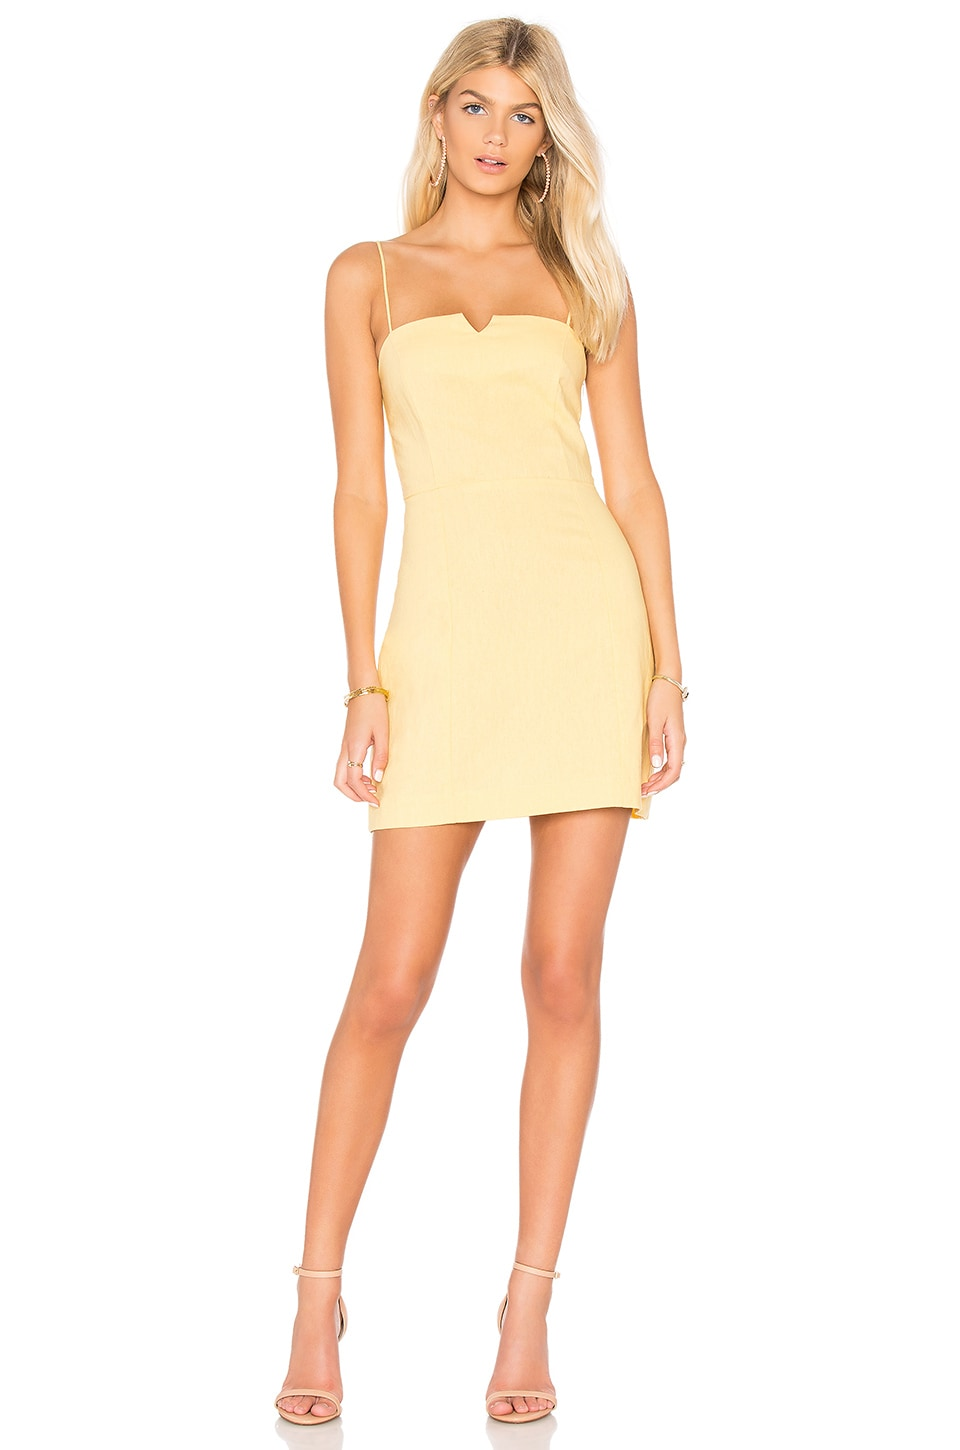 Clayton Carol Dress in Yellow